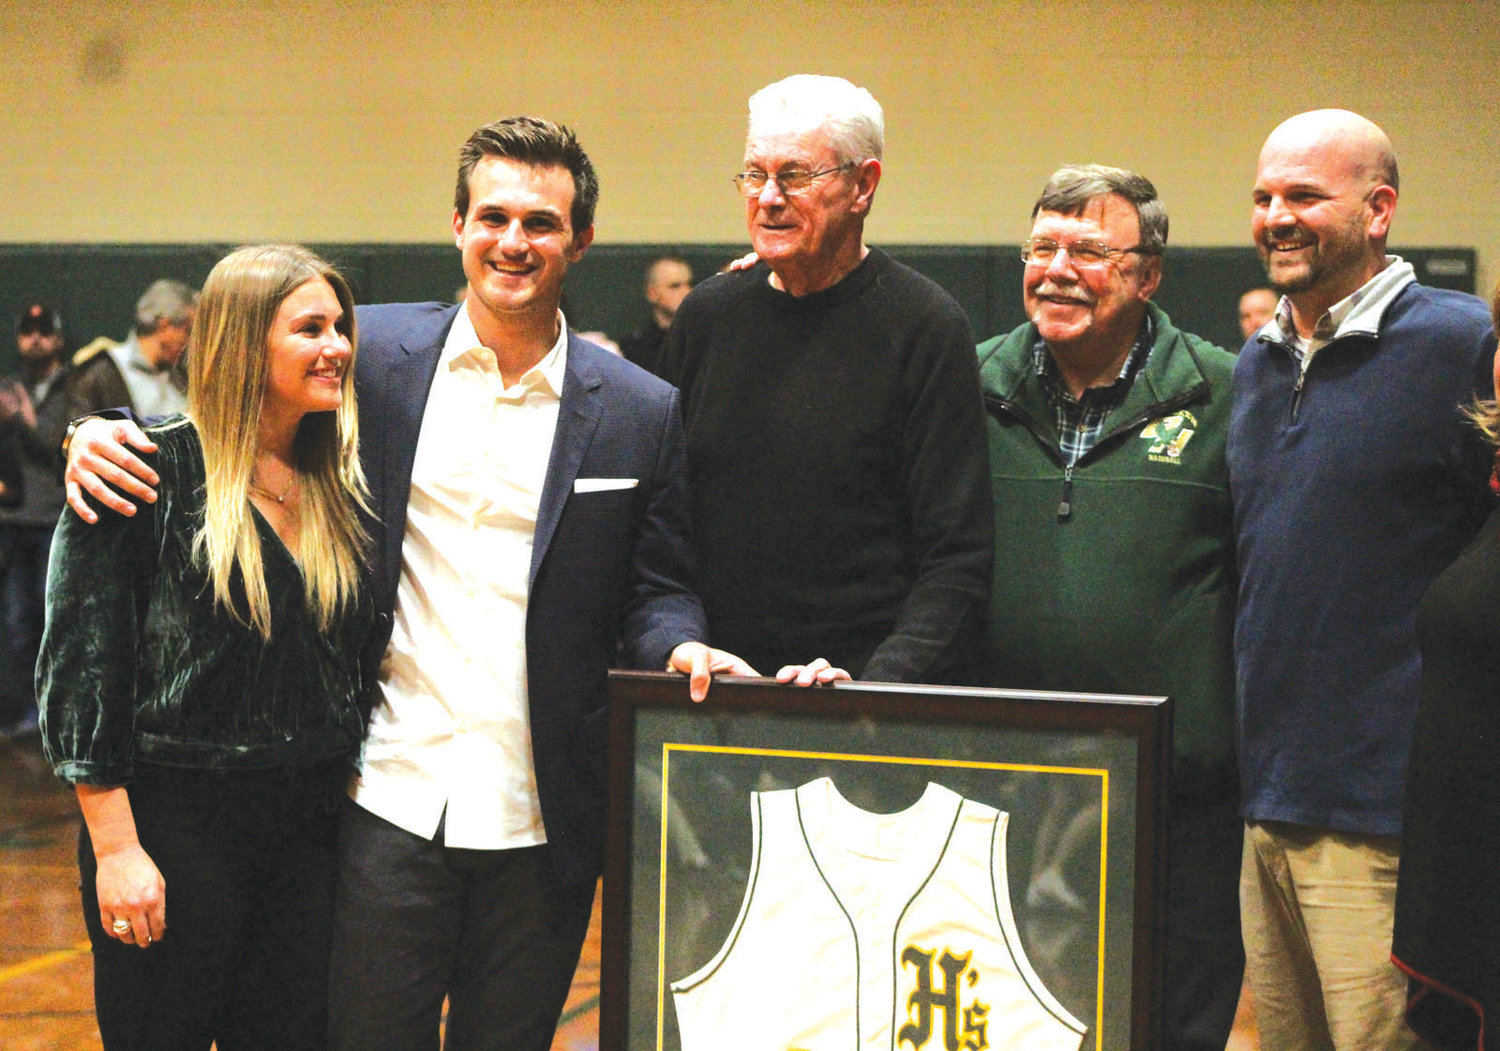 MAN OF HONOR: Thomas Pannone (second from left) is joined by the Hendricken community to retire his jersey.